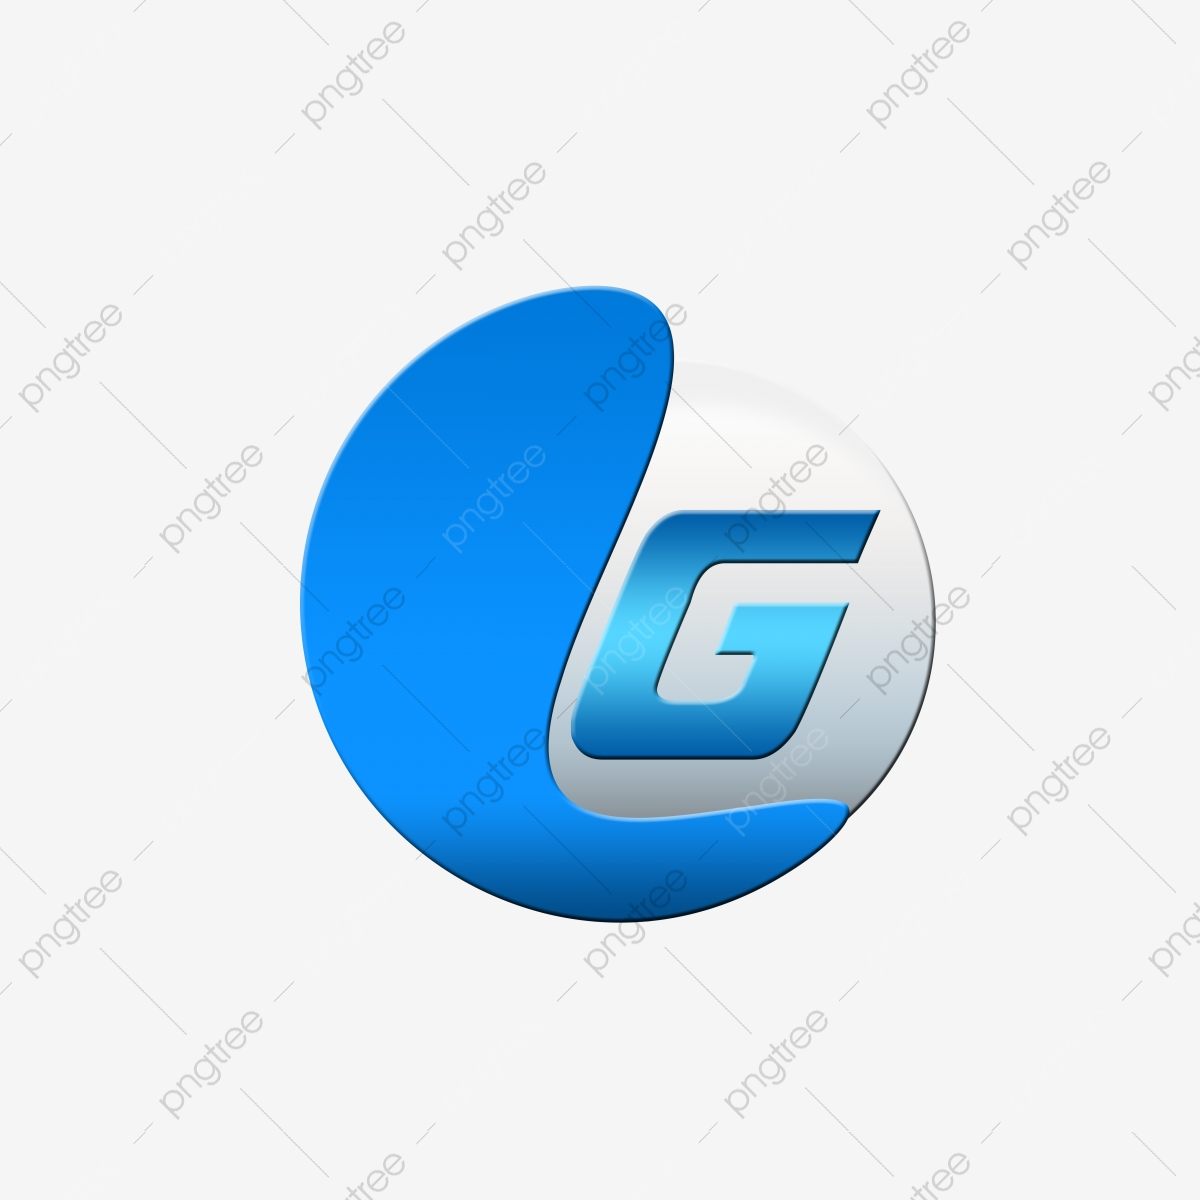 letter g png images vector and psd files free download on pngtree https pngtree com freepng letter g 3d company logo design 4173420 html